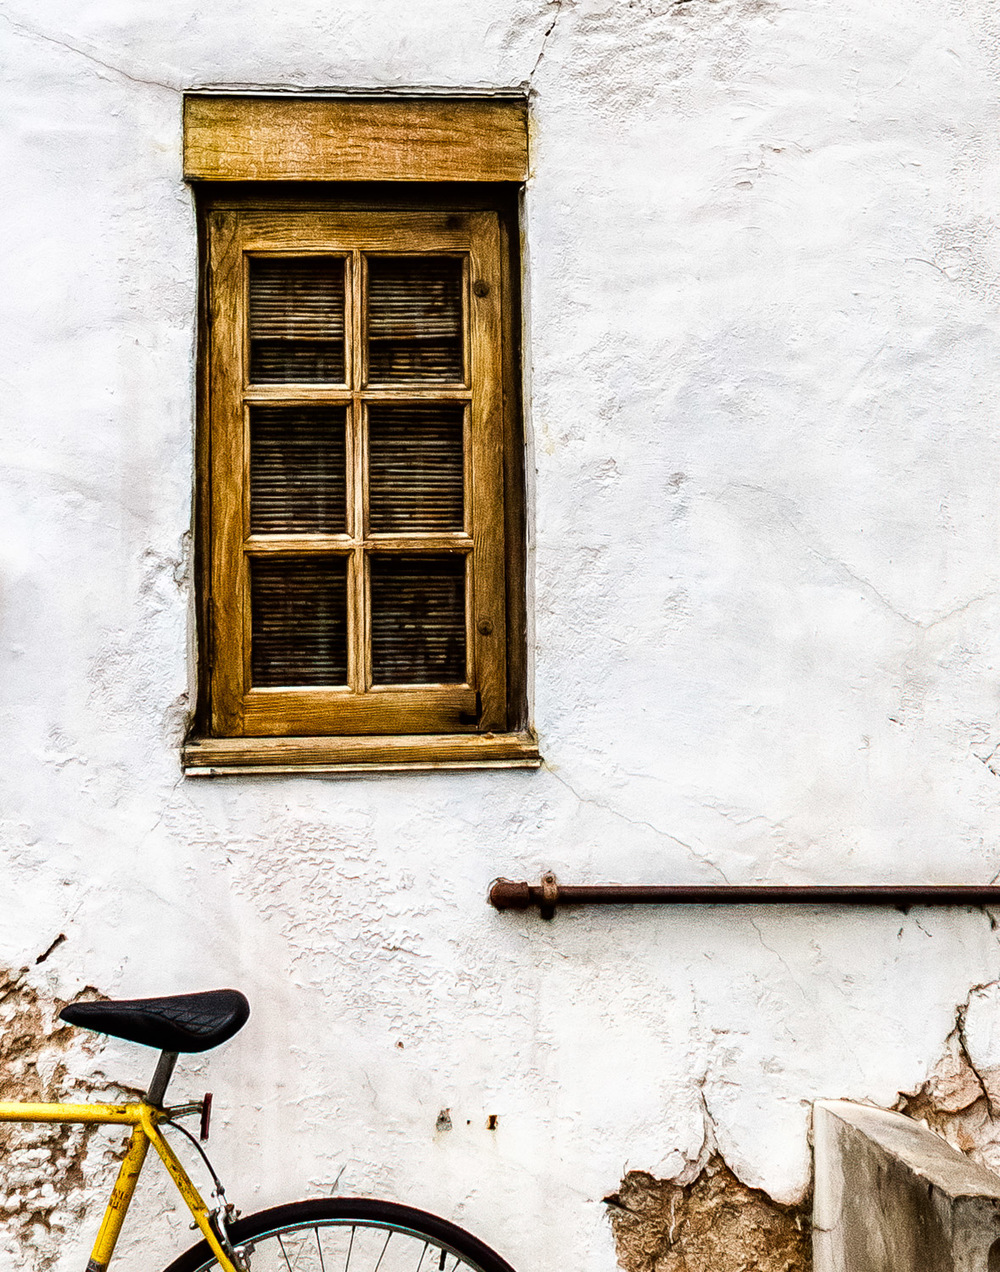 Alabaster-Wall-Wood-Window-And-Bicycle-Vertical.jpg